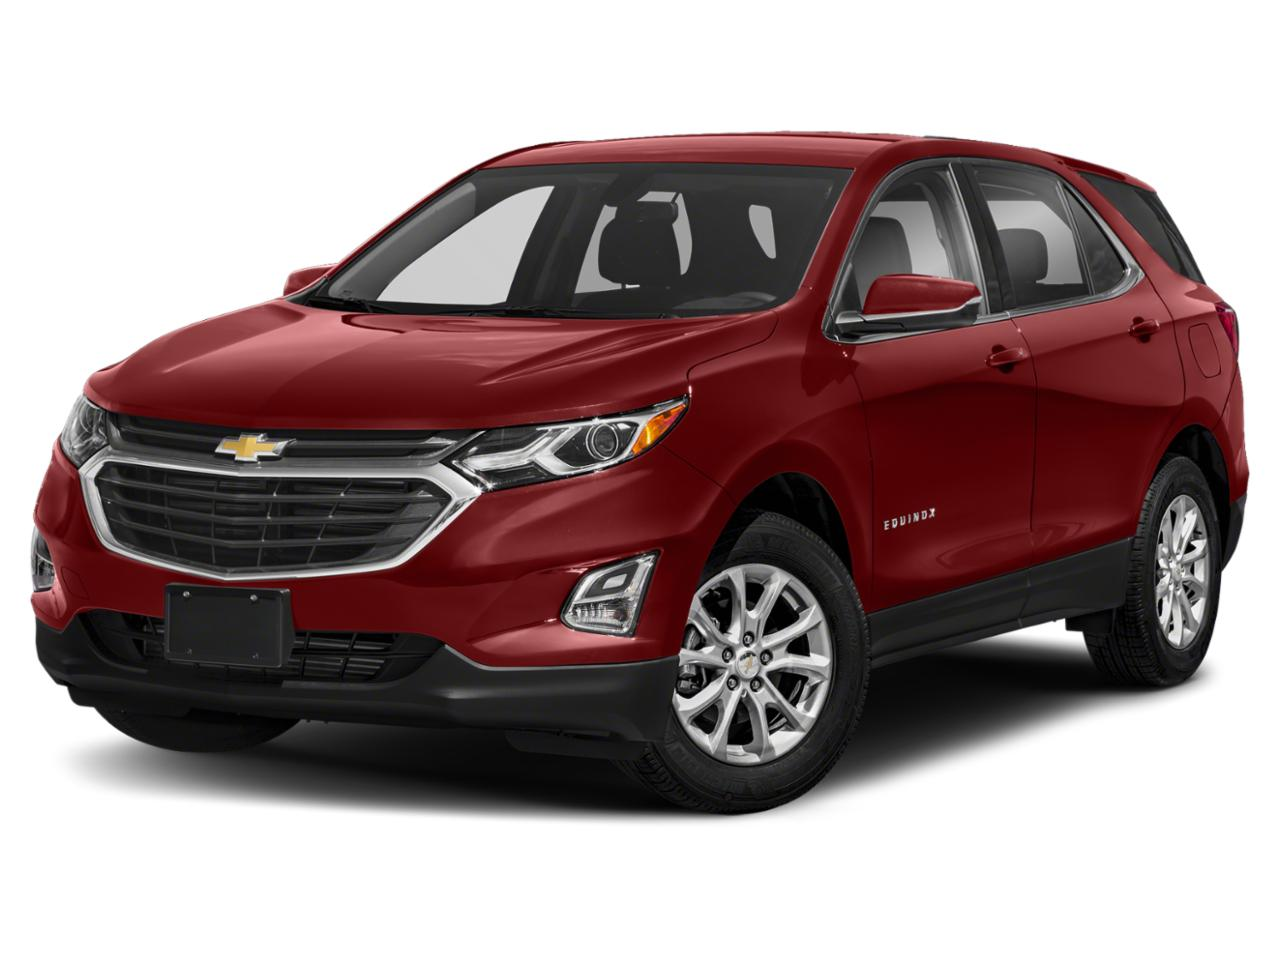 2018 Chevrolet Equinox Vehicle Photo in SOUTH PORTLAND, ME 04106-1997